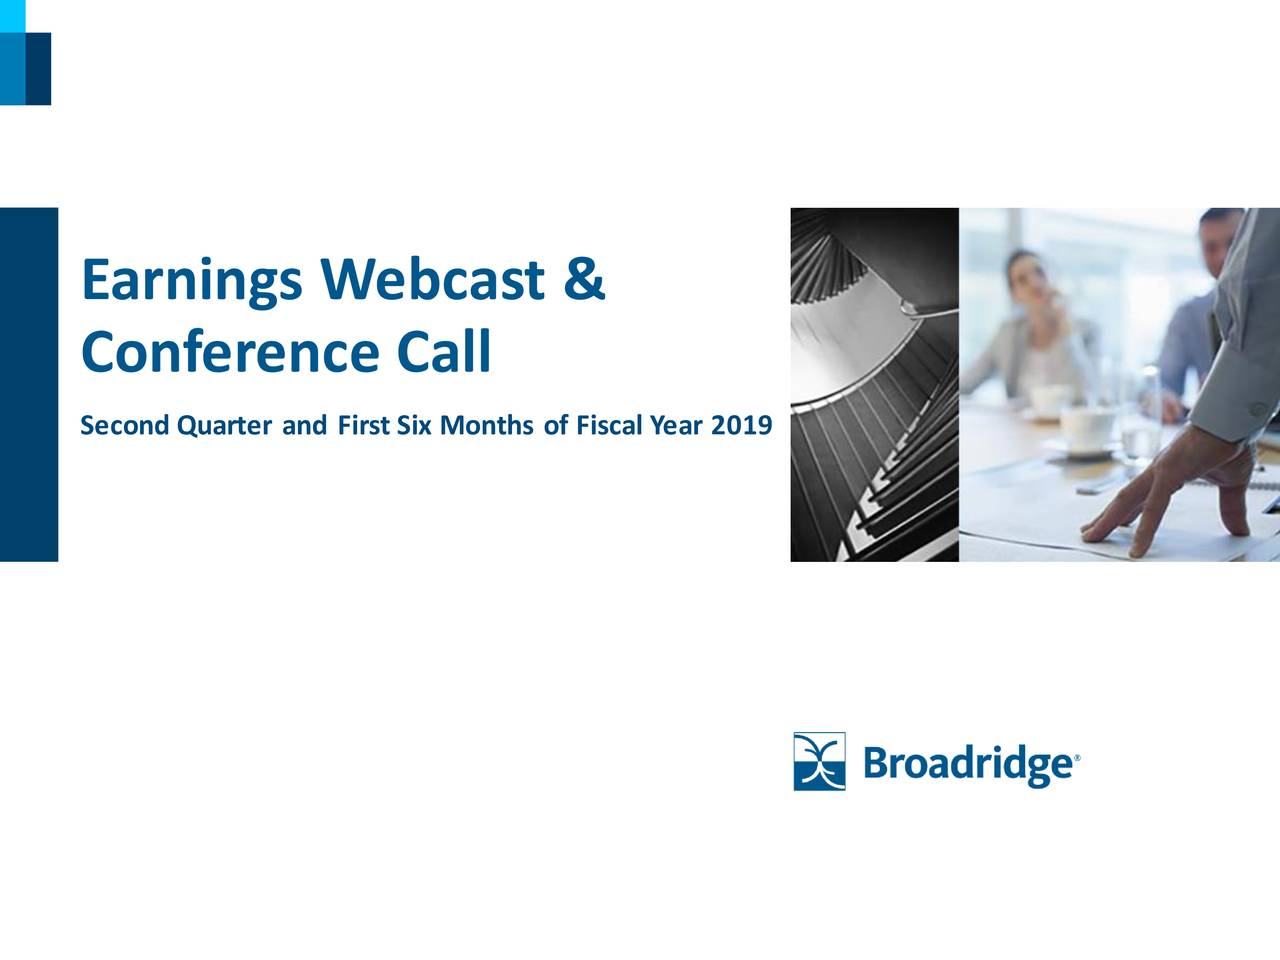 Conference Call Second Quarter and First Six Months of Fiscal Year 2019